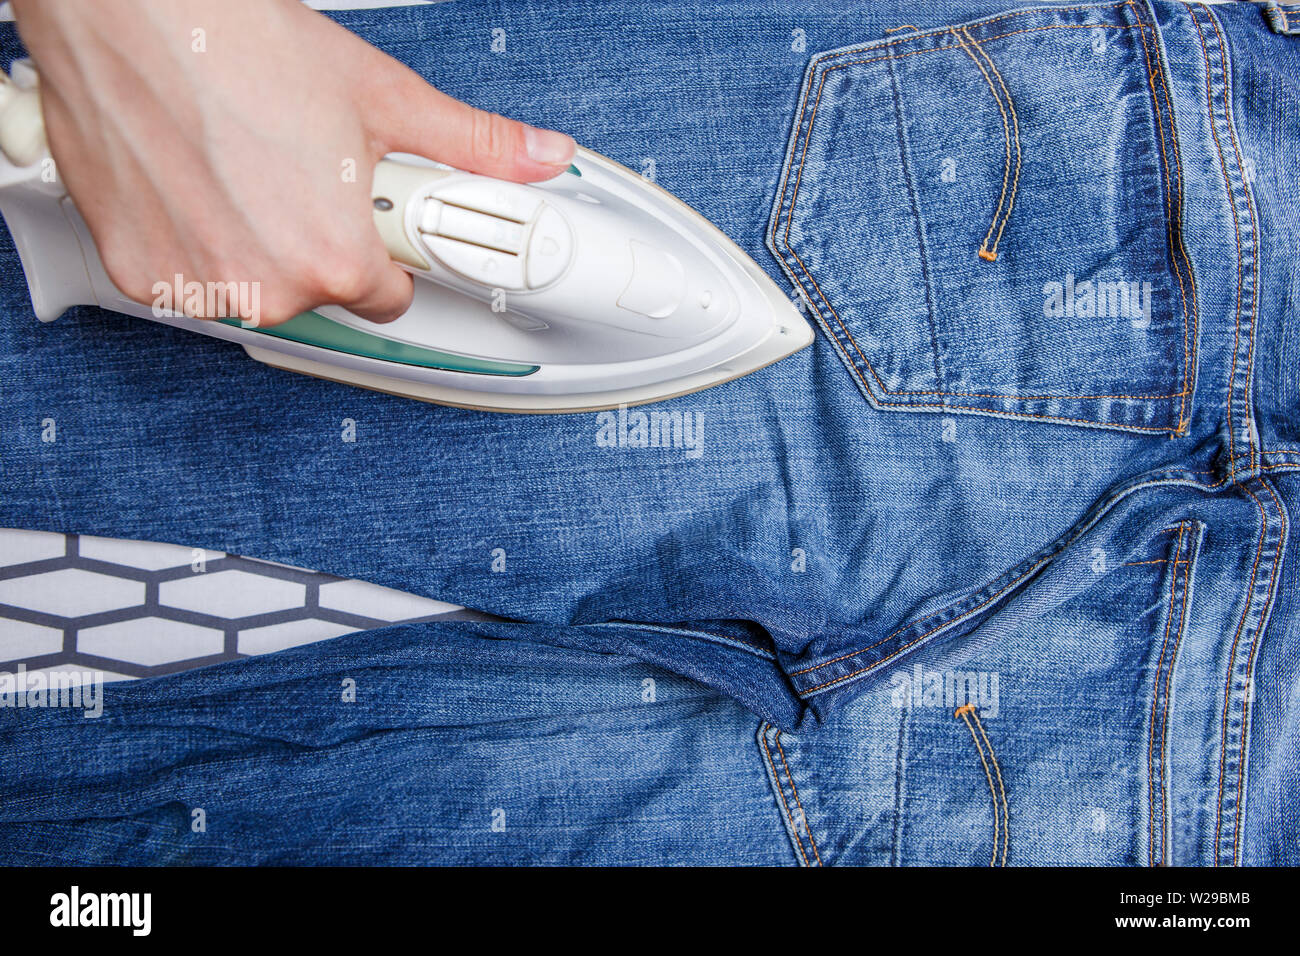 Photo of man ironing blue jeans on board - Stock Image